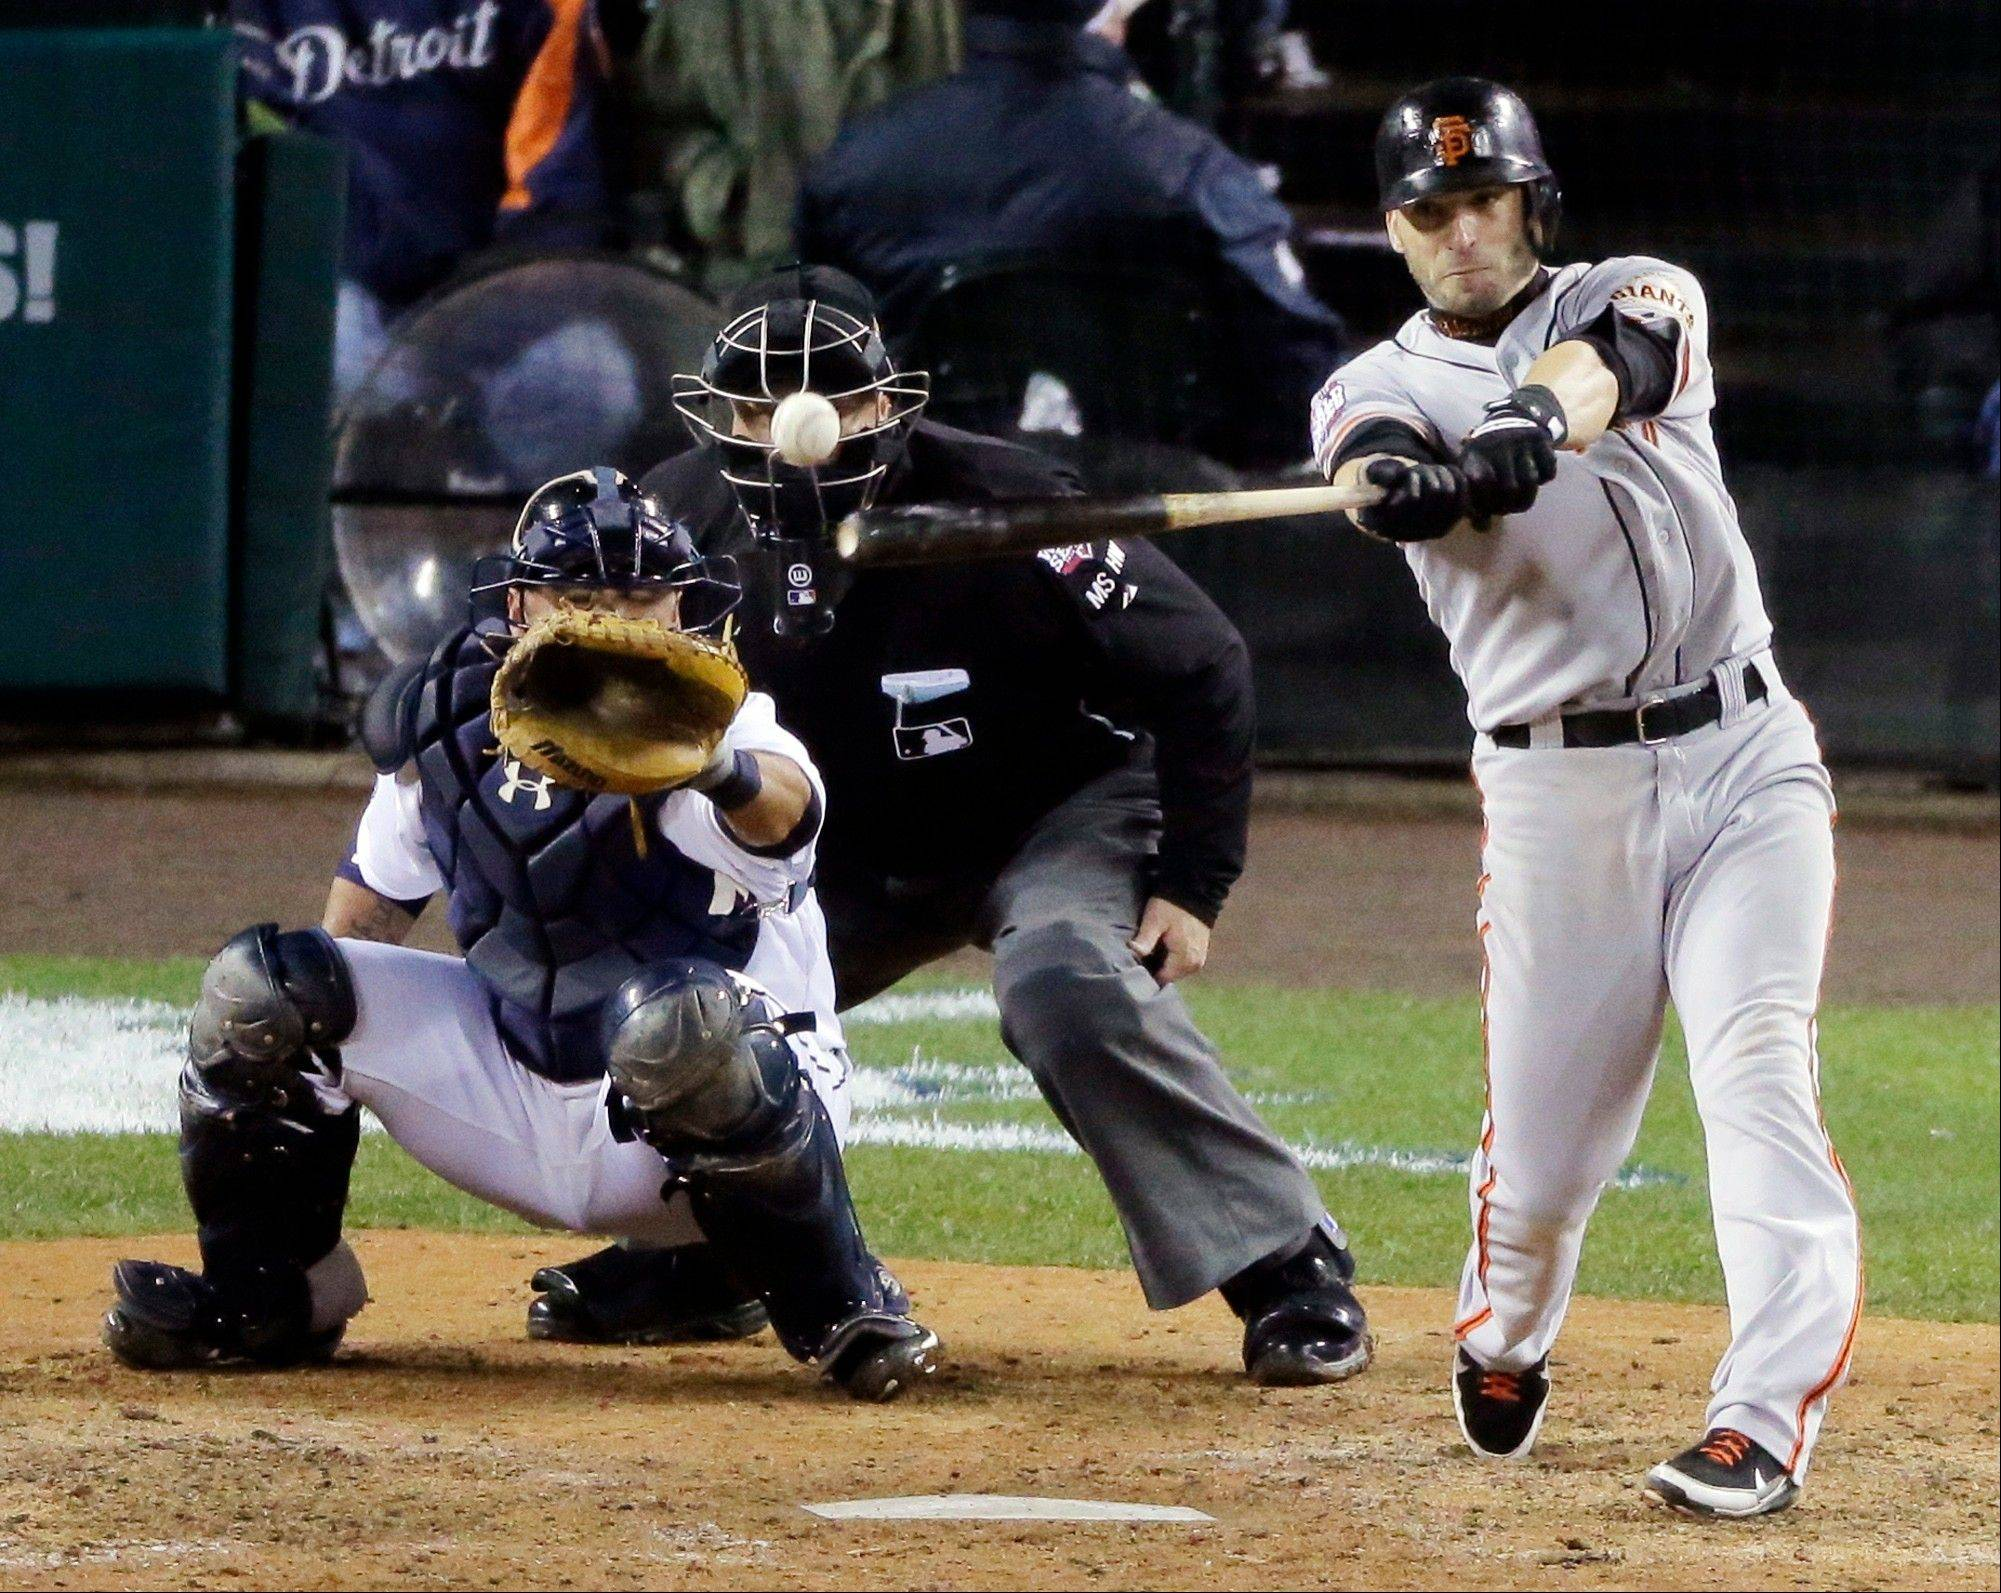 The San Francisco Giants' Marco Scutaro hits an RBI single during the 10th inning of Game 4 the World Series against the Detroit Tigers in Detroit. Two people with knowledge of the negotiations said Tuesday that Scutaro is weighing a two-year contract offer from the Giants that includes a vesting option.